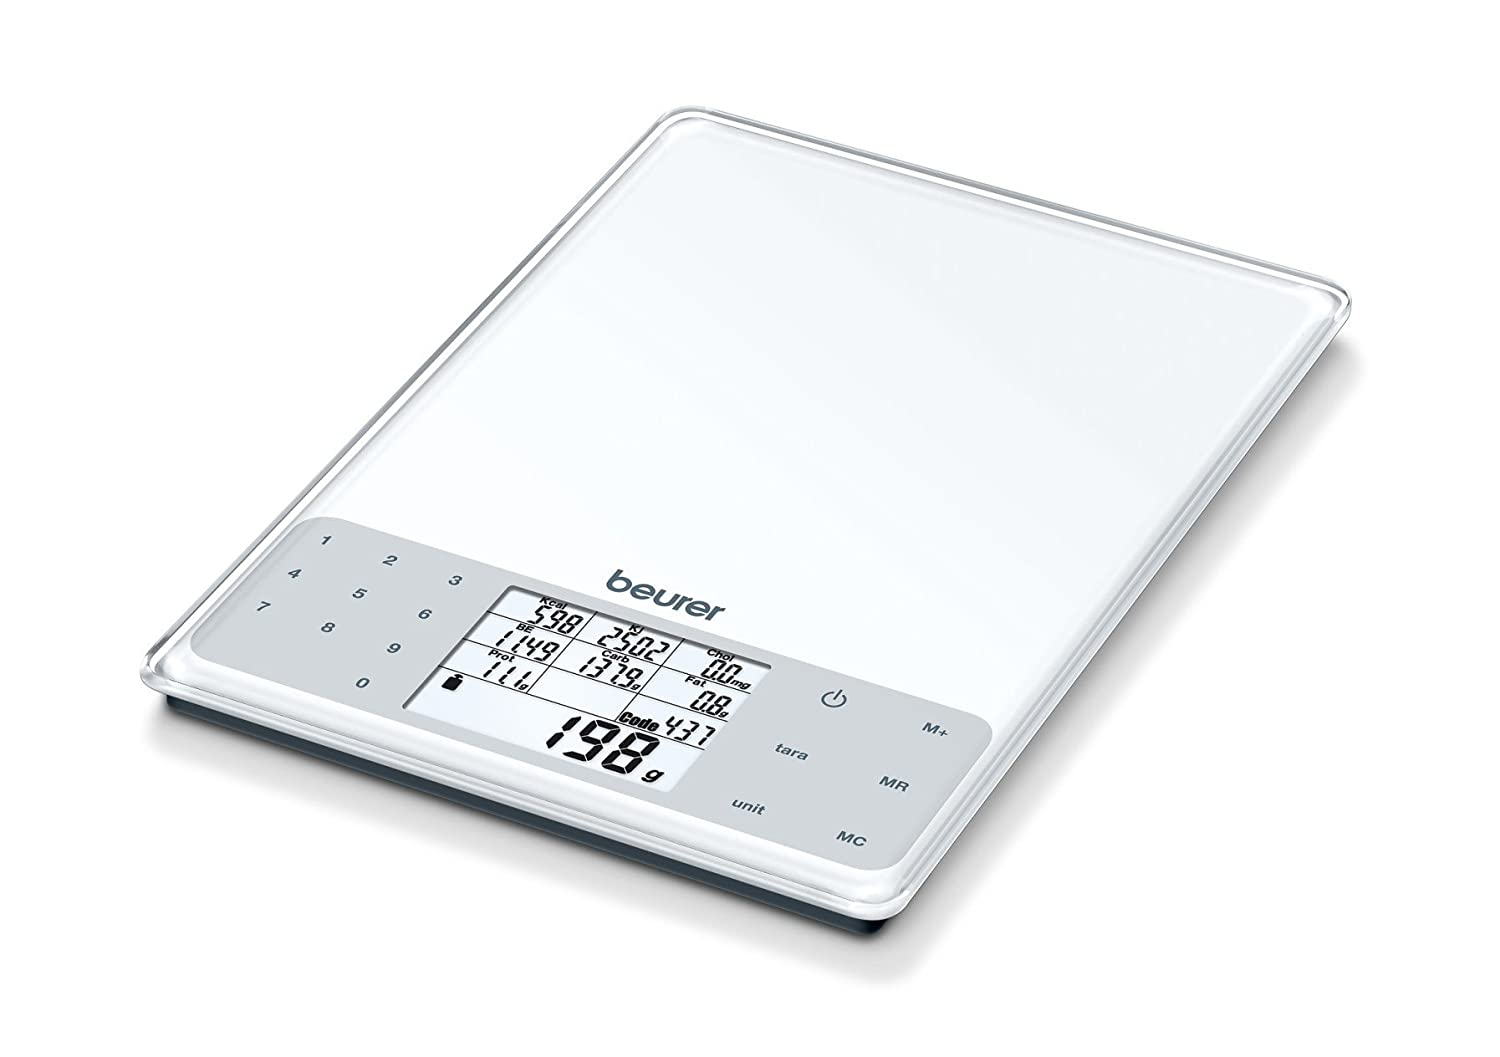 Beurer DS 61 Electronic Nutritional Analysis Scales